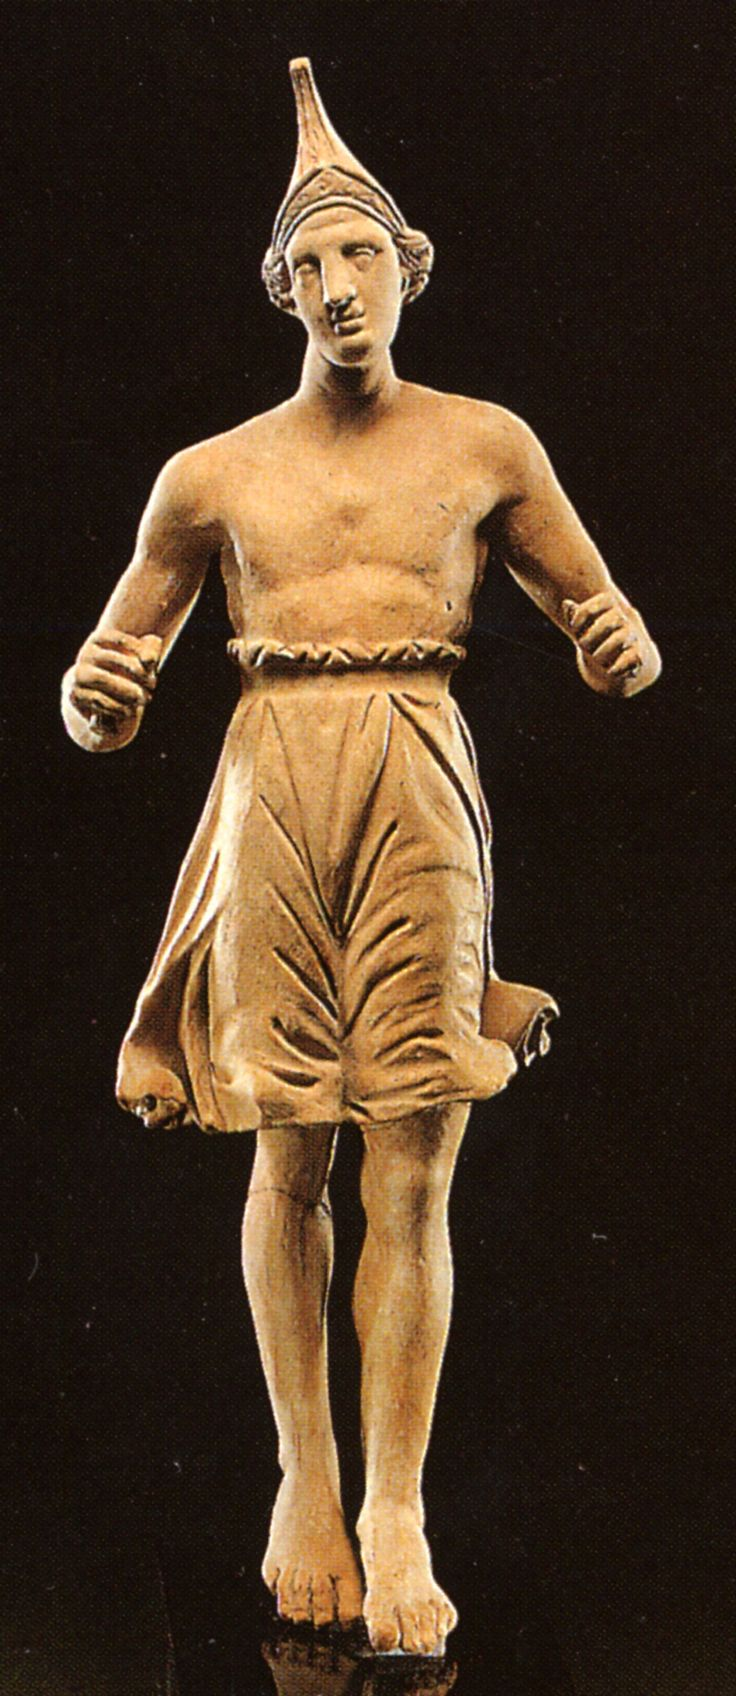 Statue of dancer, discovered in an Amphipolis tomb, now in the Kavala museum